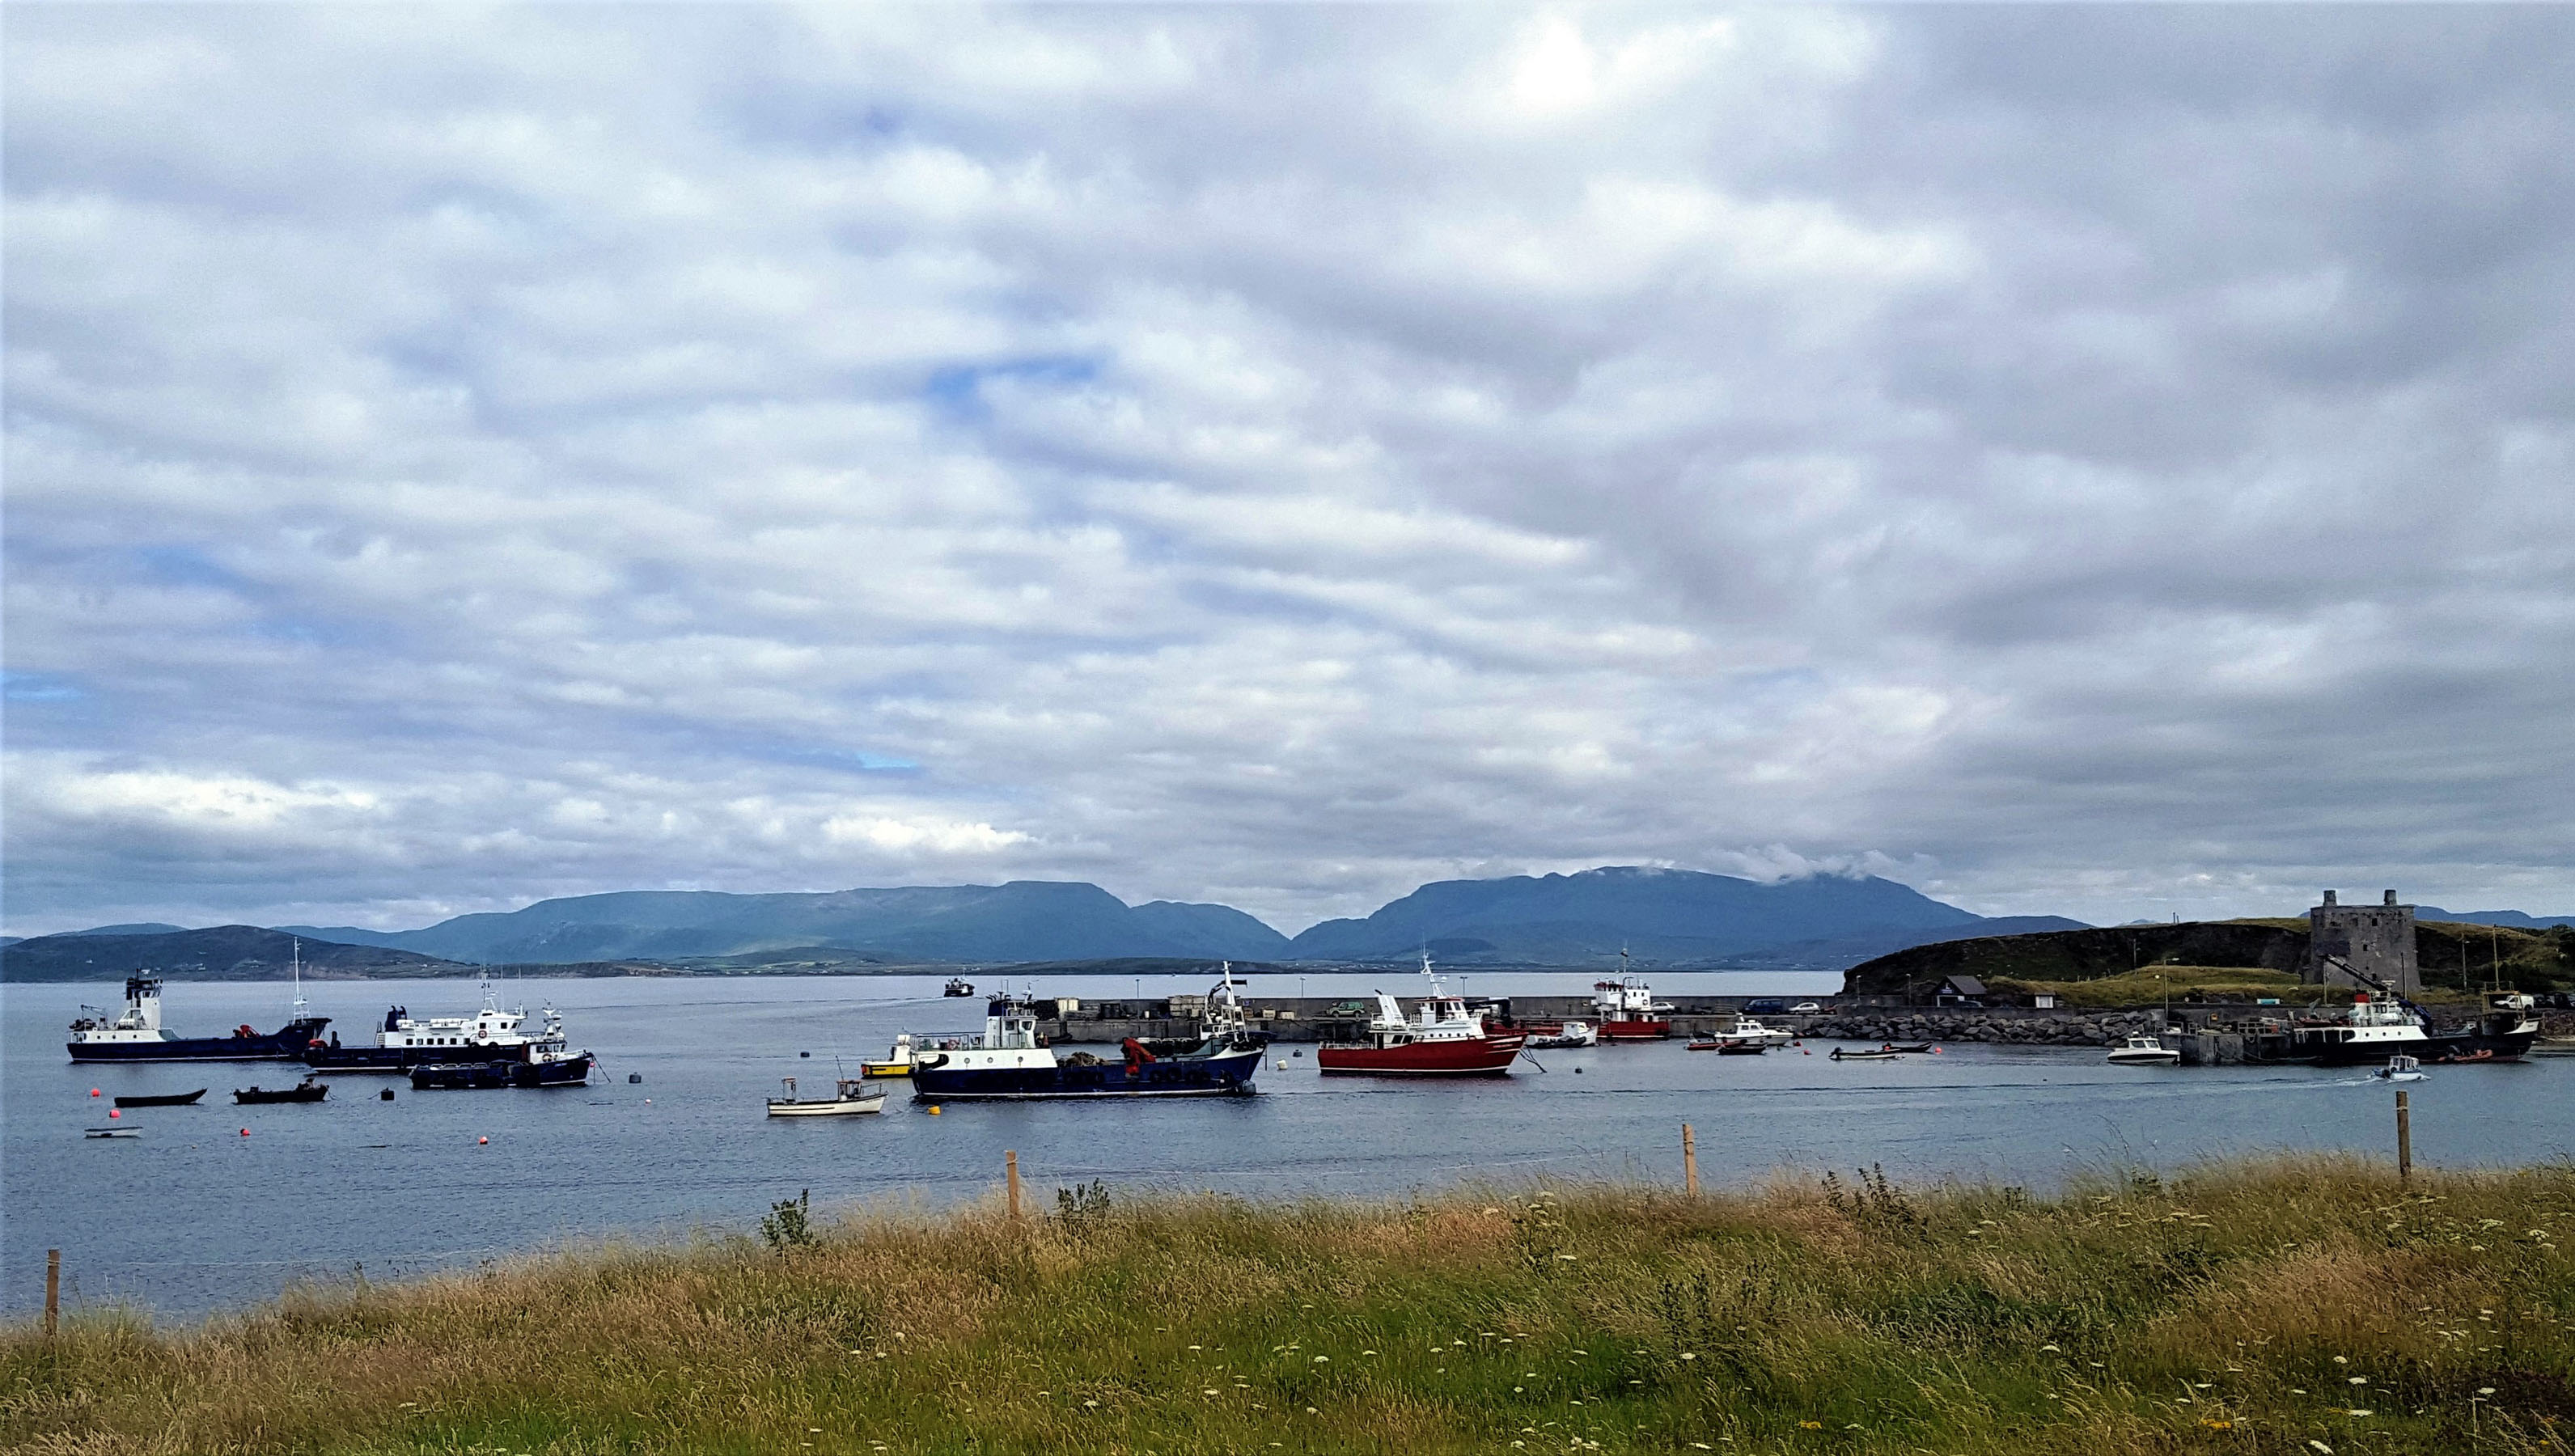 Eigg, Bruernish, Clew Bay Queen (ex Kilbrannan) and Raasay at Clare Island (Mark Wemyss)